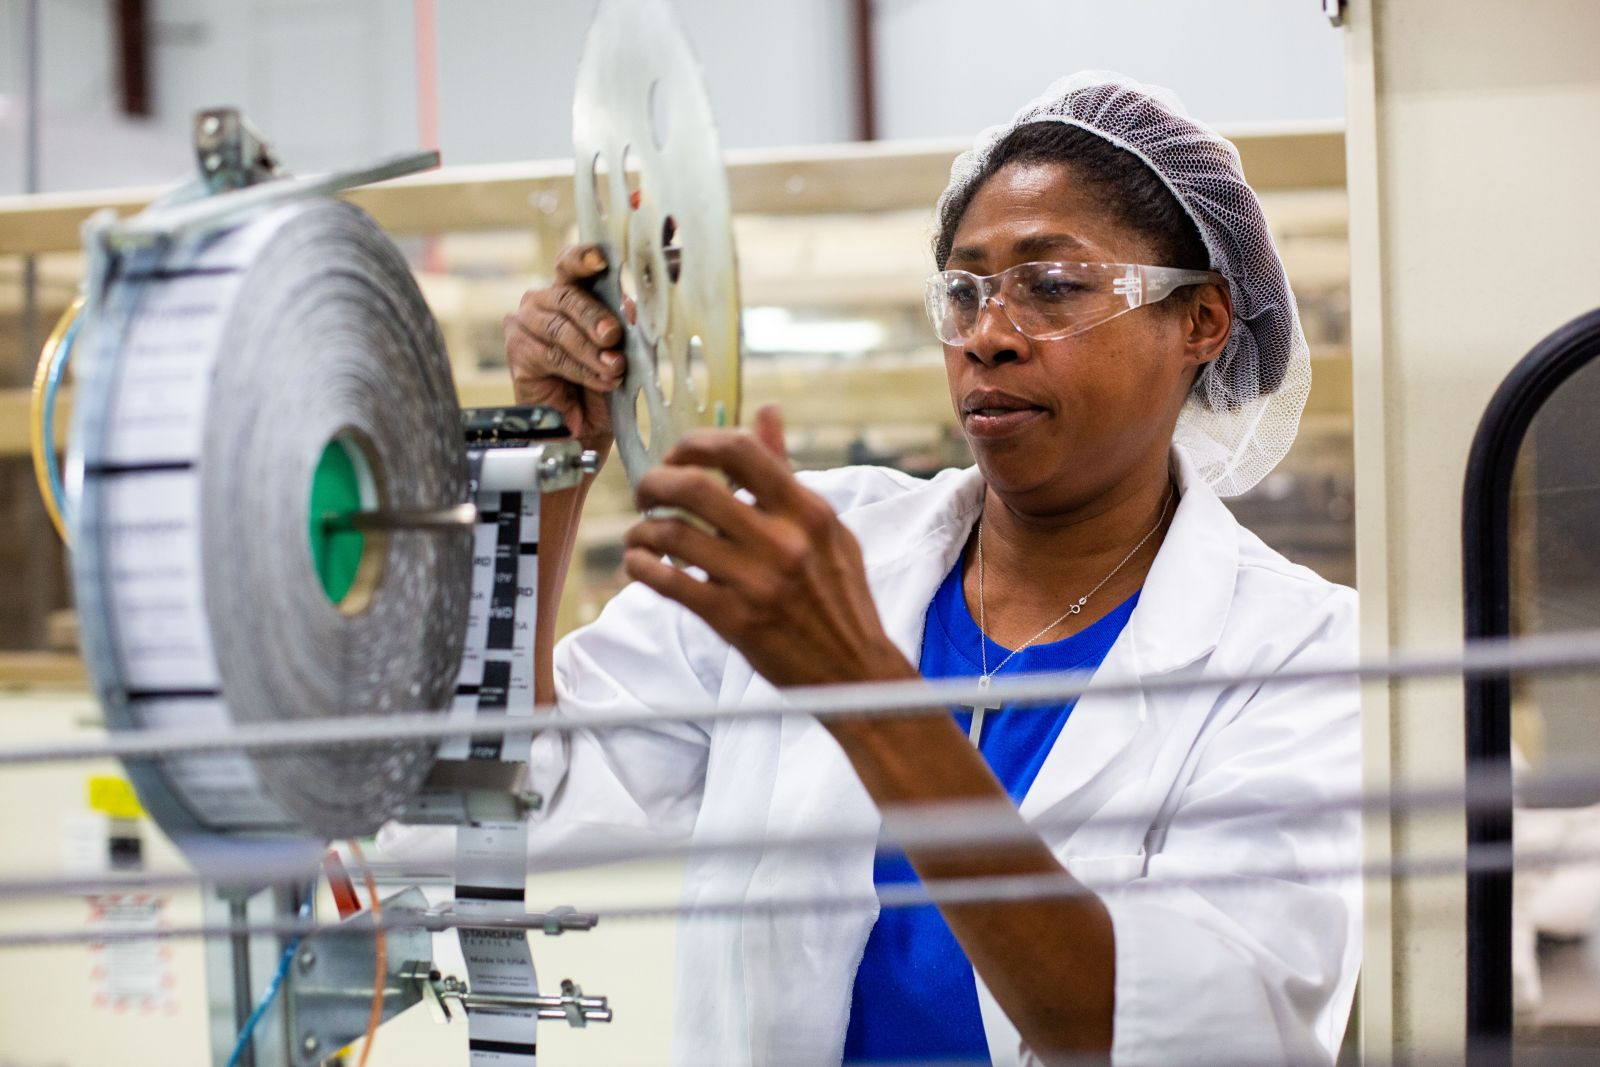 South Carolina's manufacturing sector has stayed ahead of North Carolina's over the past year of recovery. (Photo/Provided)